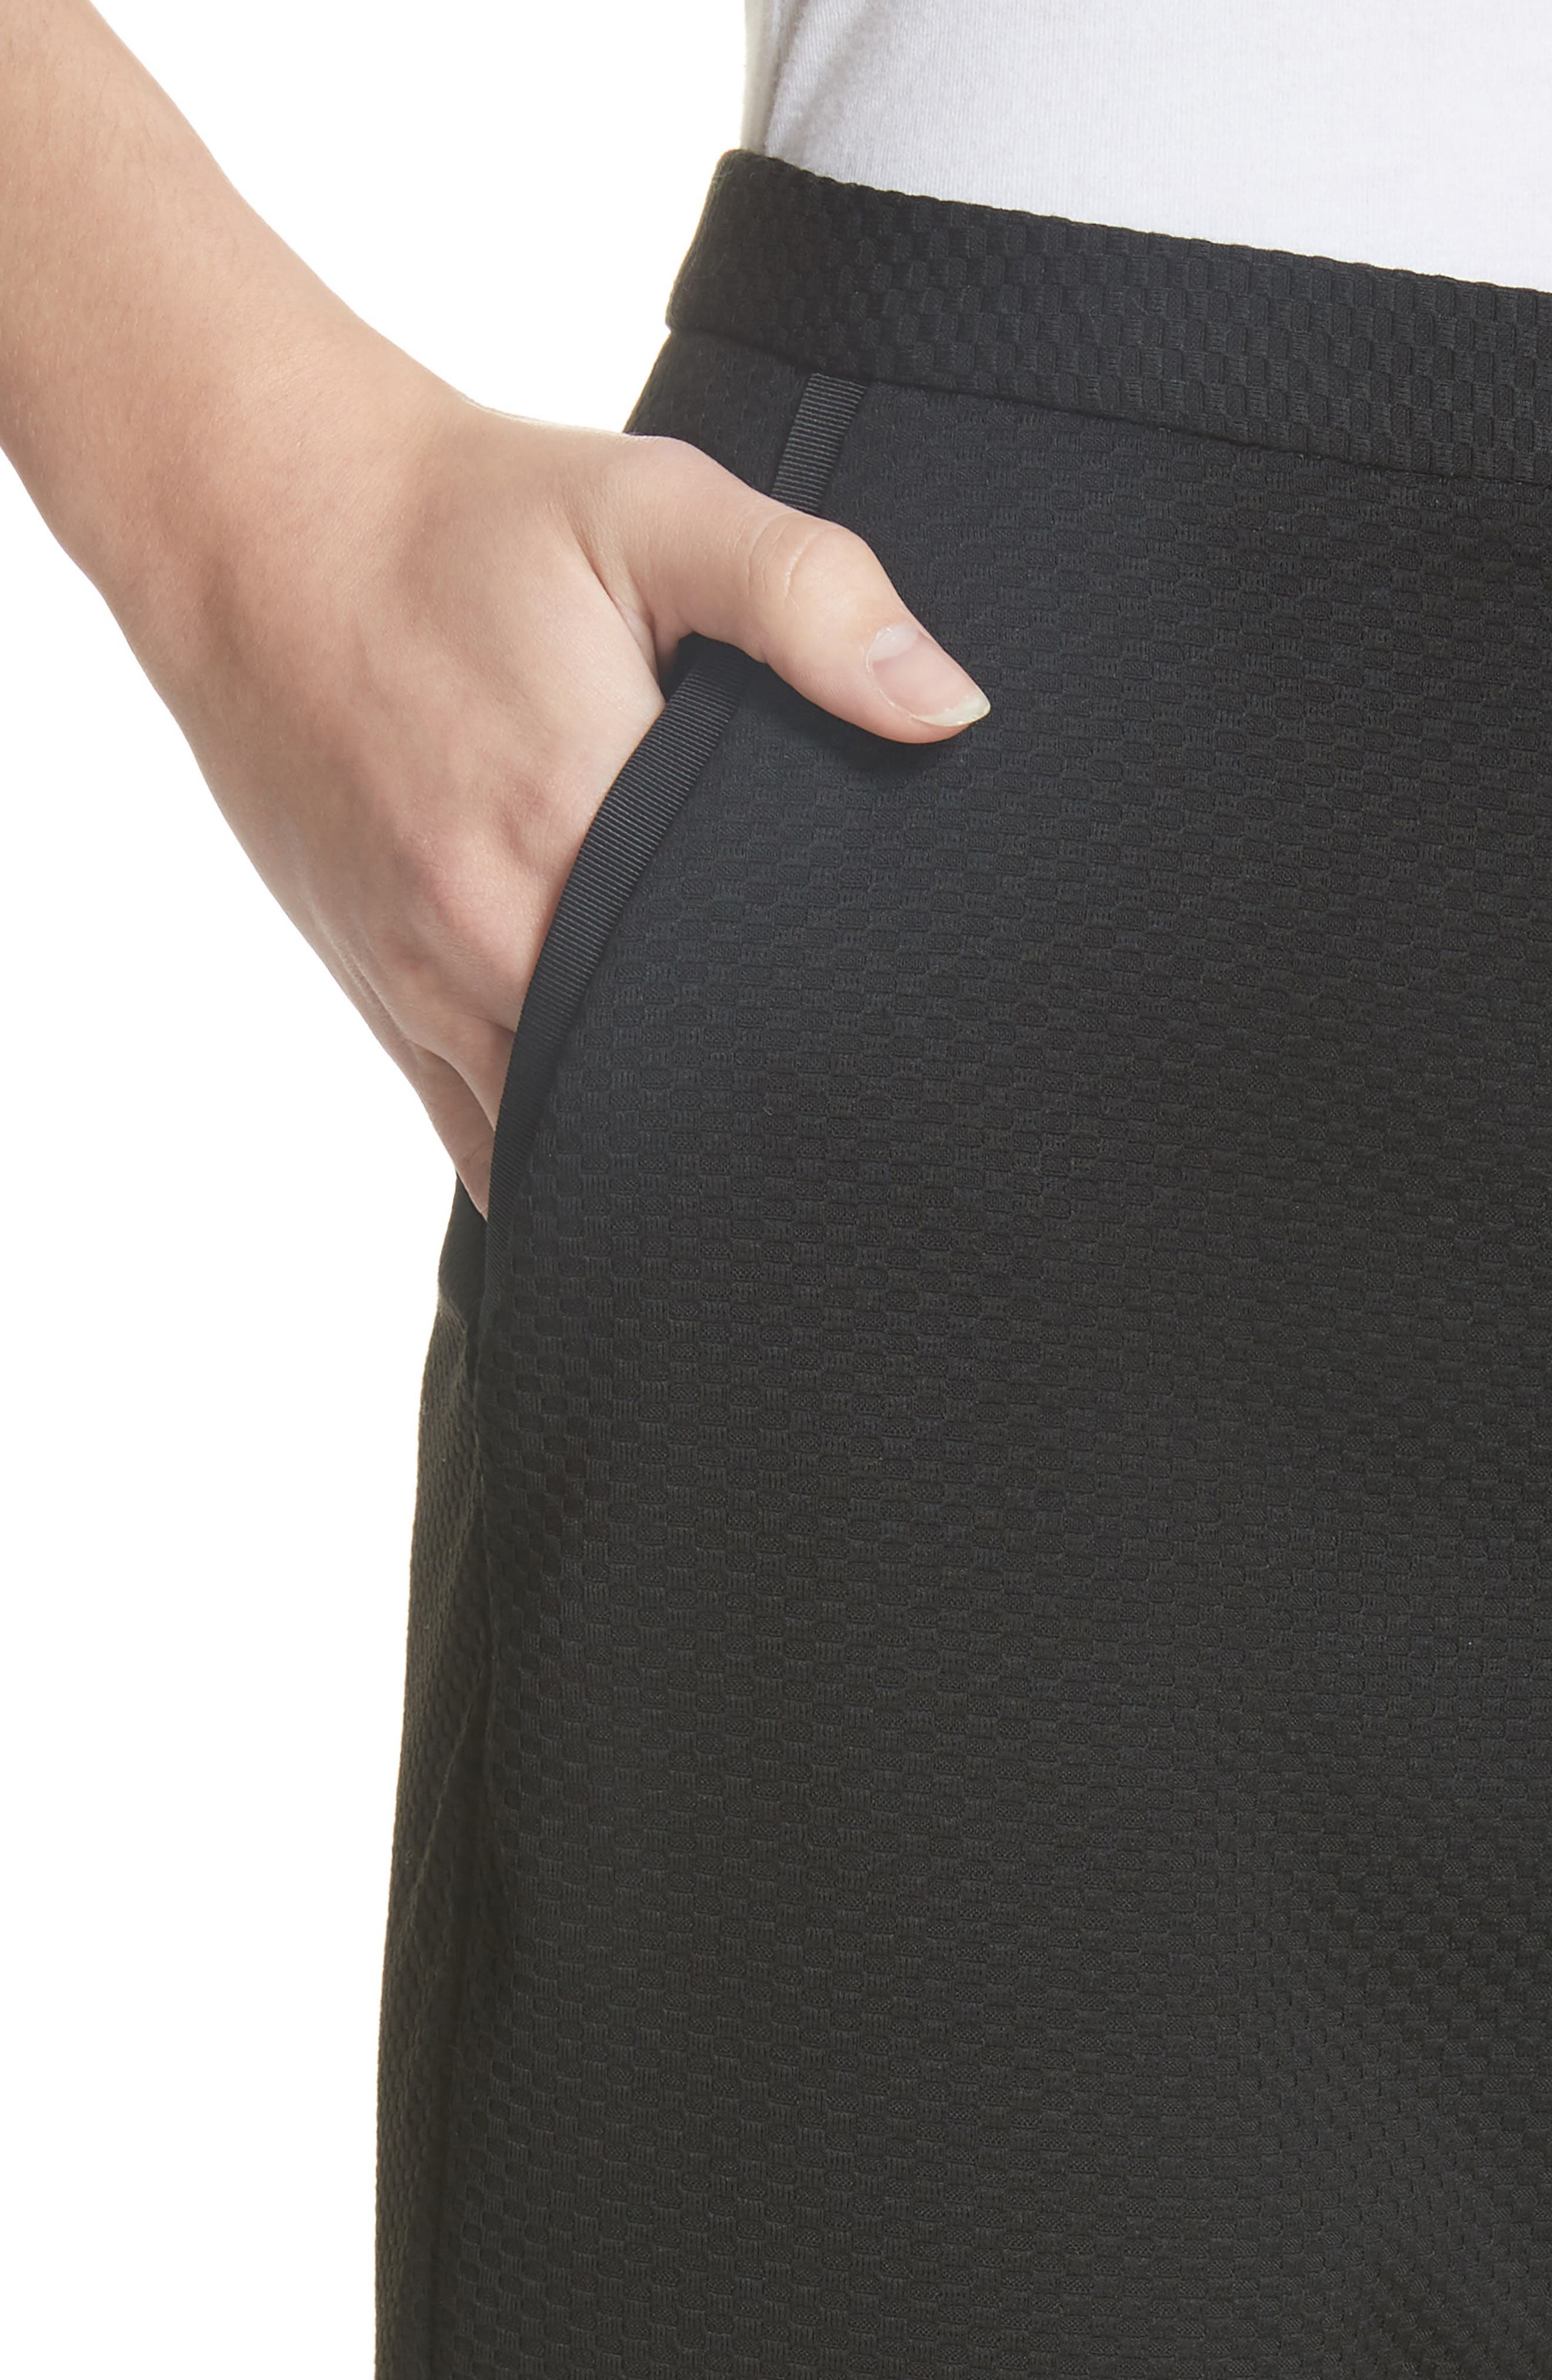 Ted Working Title Nadaet Bow Detail Textured Trousers,                             Alternate thumbnail 4, color,                             001